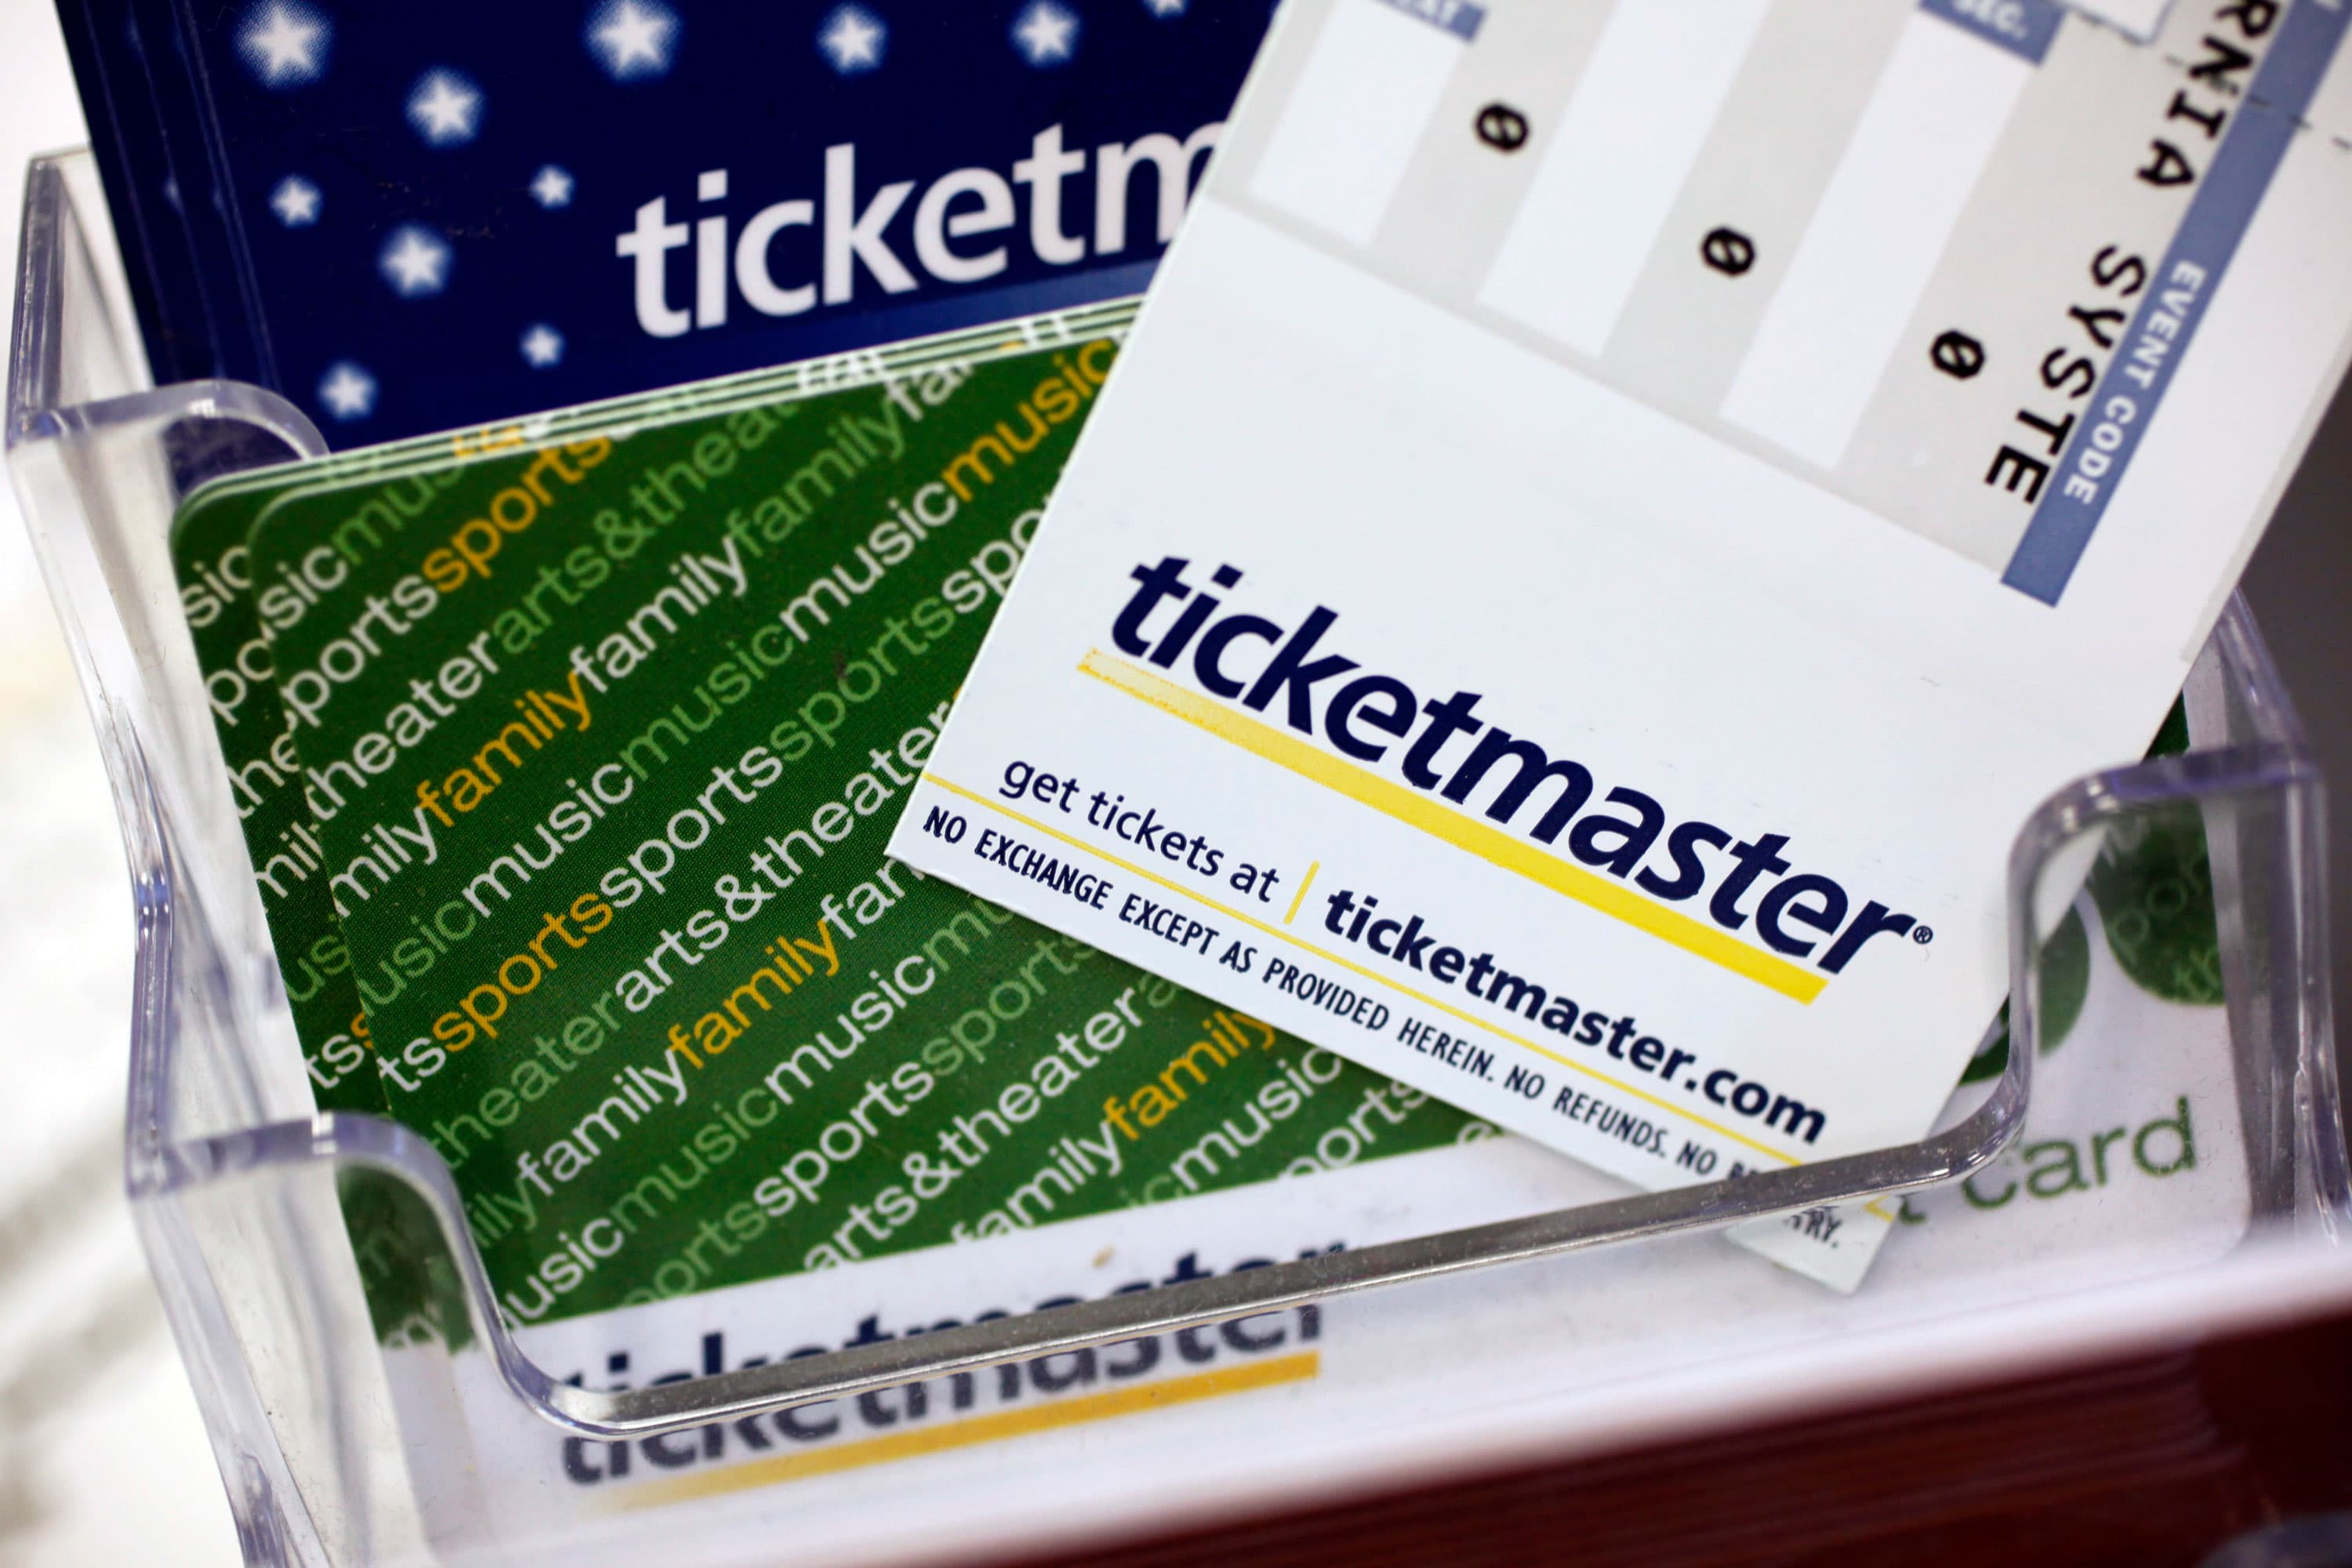 Ticketmaster reportedly has secret deals with scalpers that cheat fans